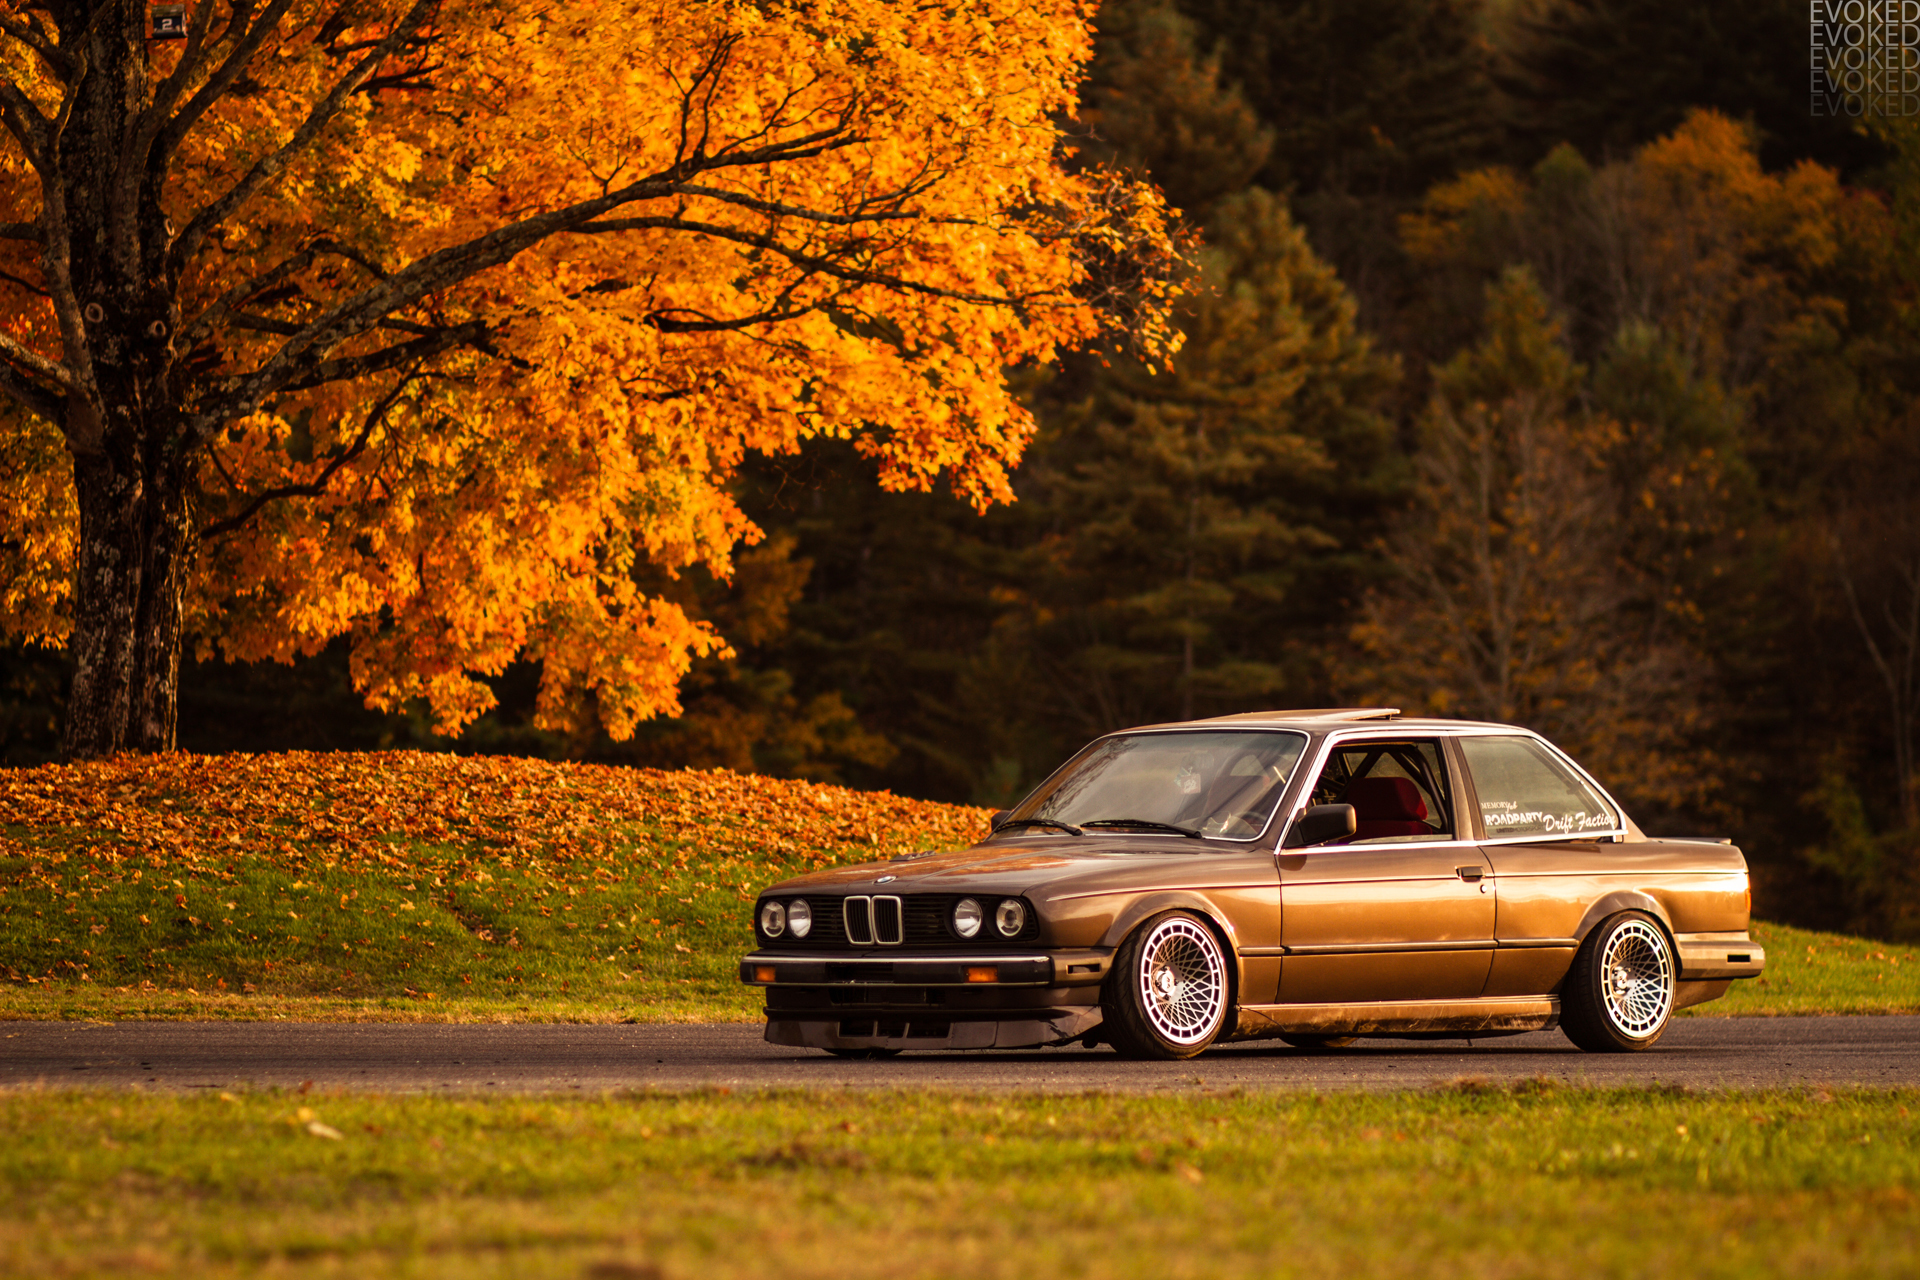 bmw e30 nature - HD Desktop Wallpapers | 4k HD